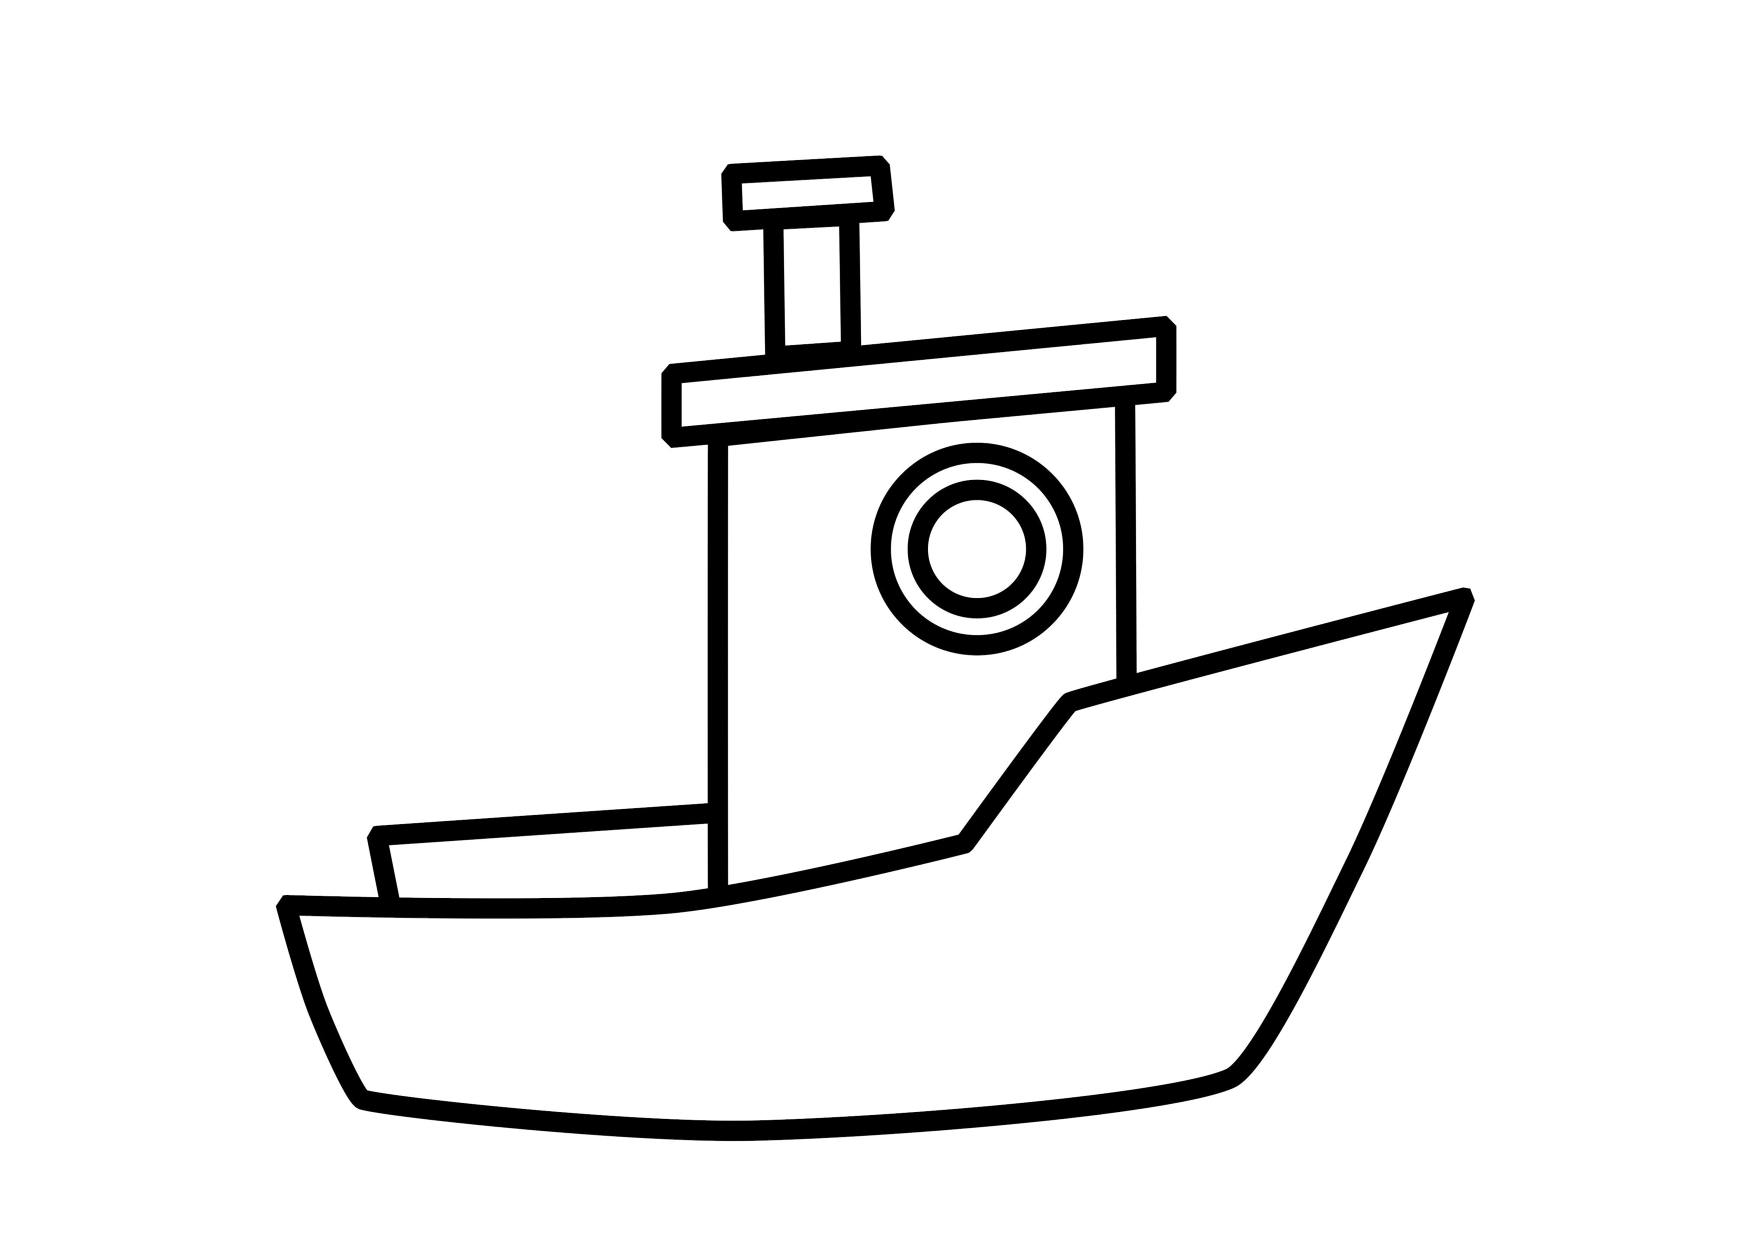 Motor Boat Coloring Pages - Coloring Home | 1240x1754